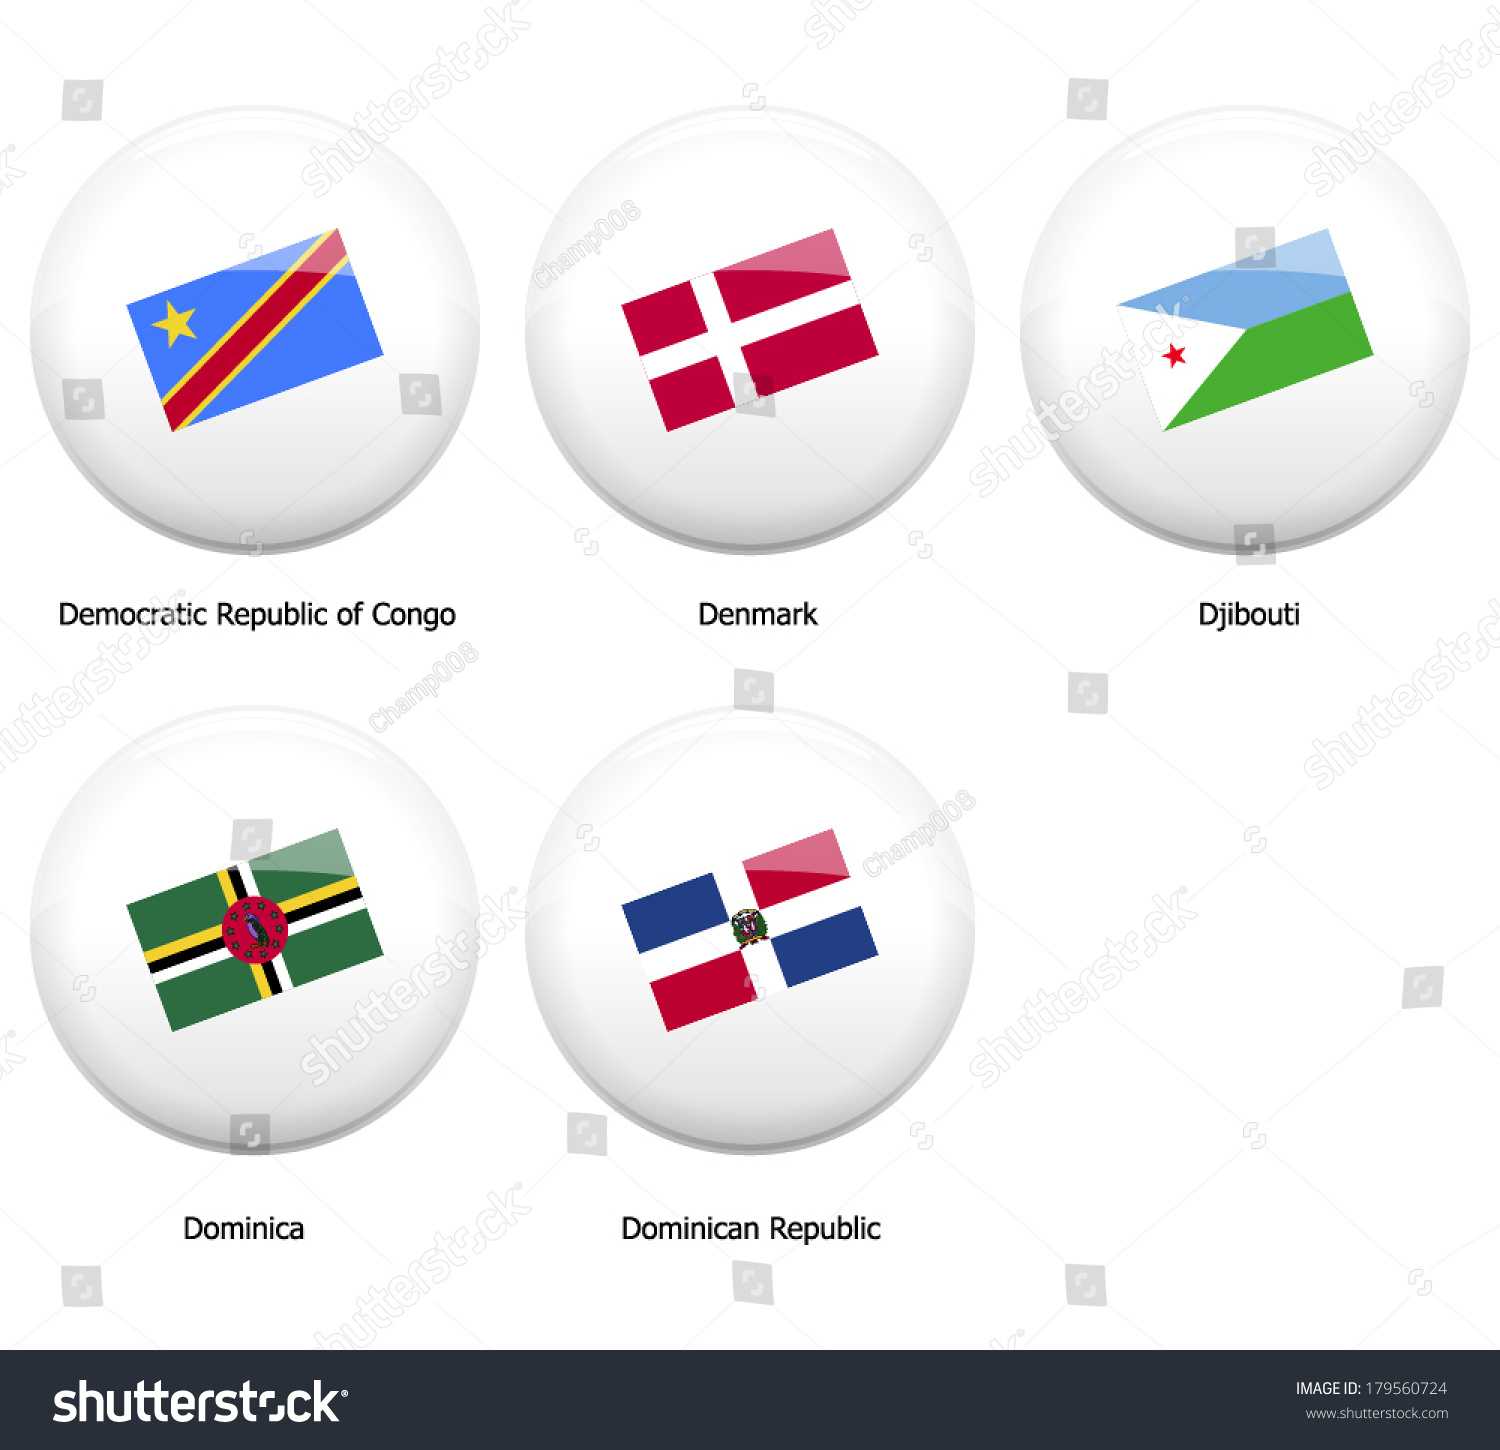 Name Of Country That Starts With Letter D